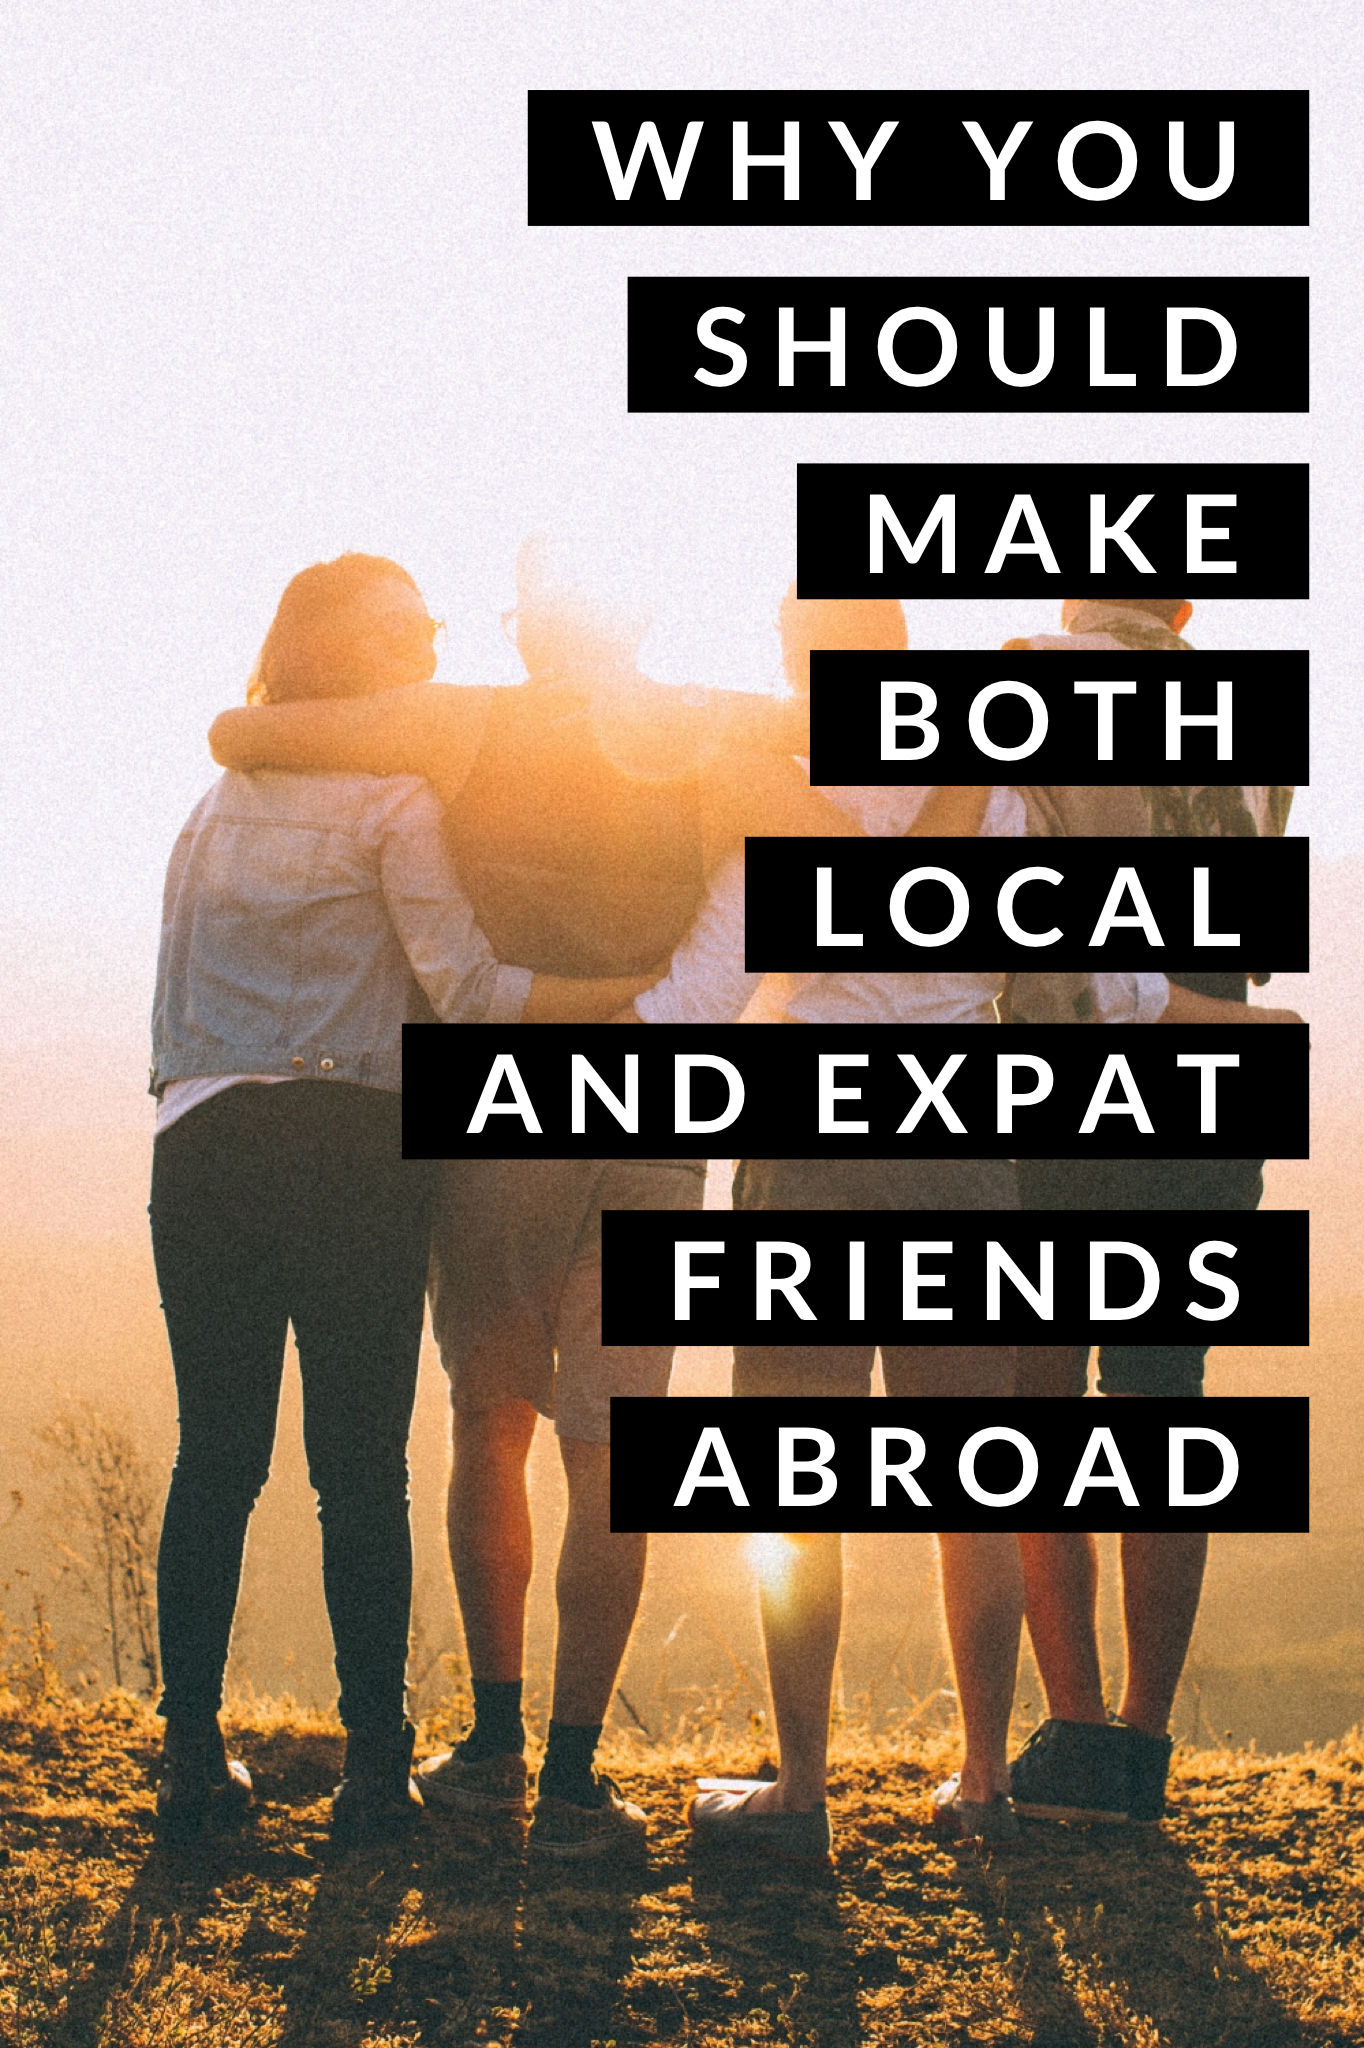 Why you should make both expat & local friends when living abroad.